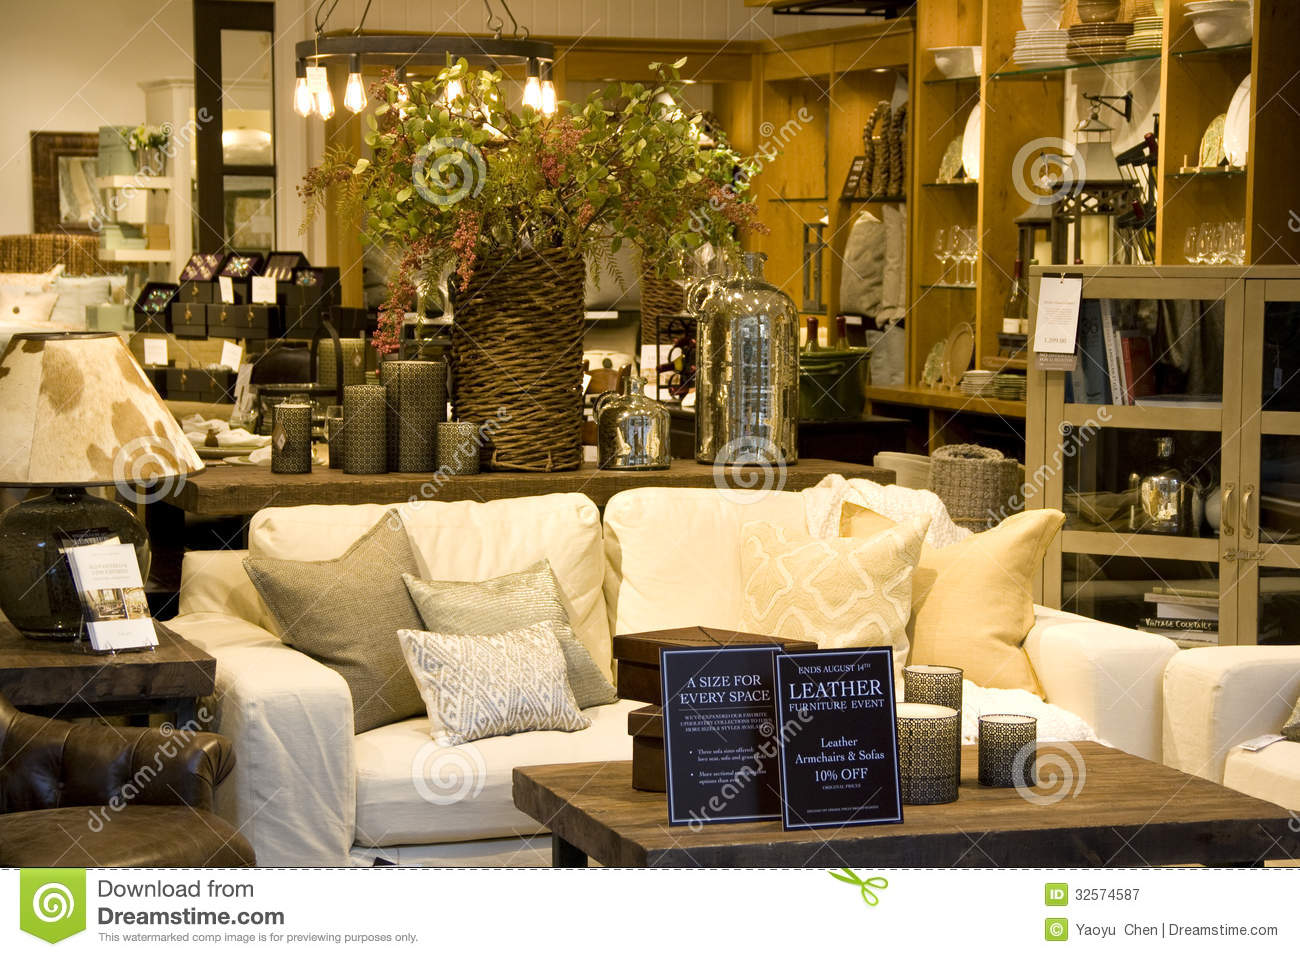 Furniture Home Decor Store. Indoor, Couch.